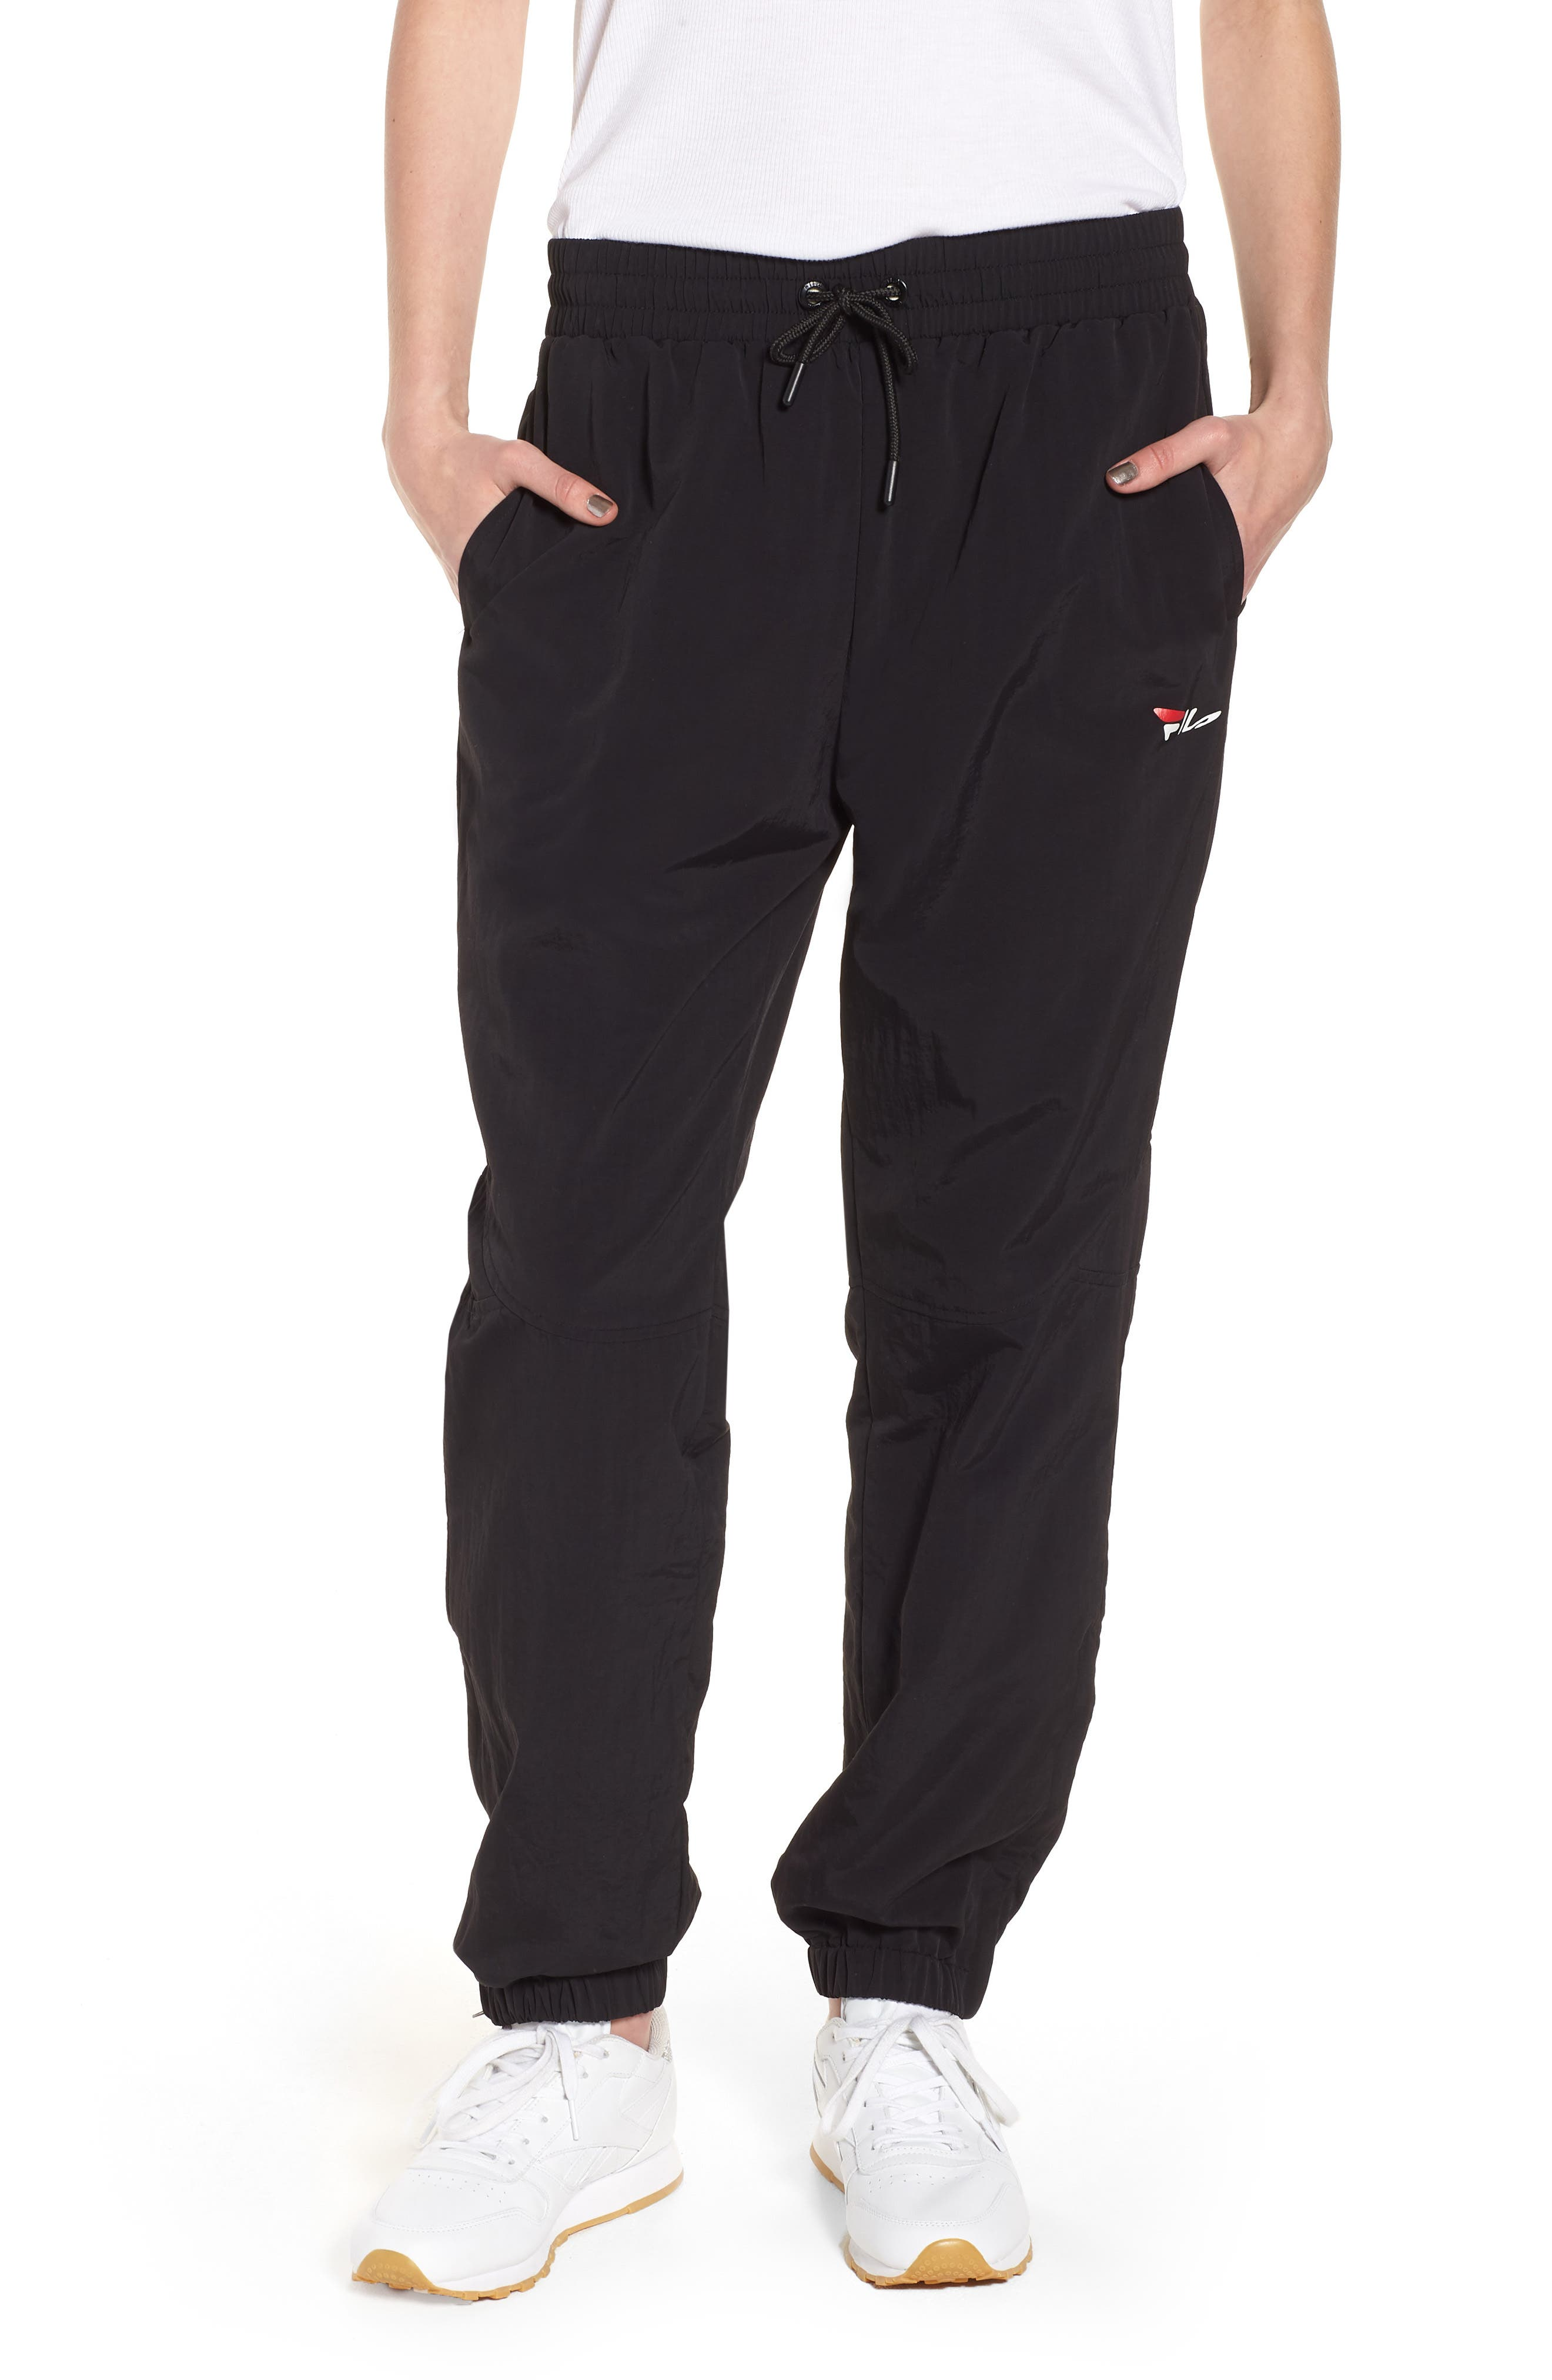 fila sweatsuit womens brown